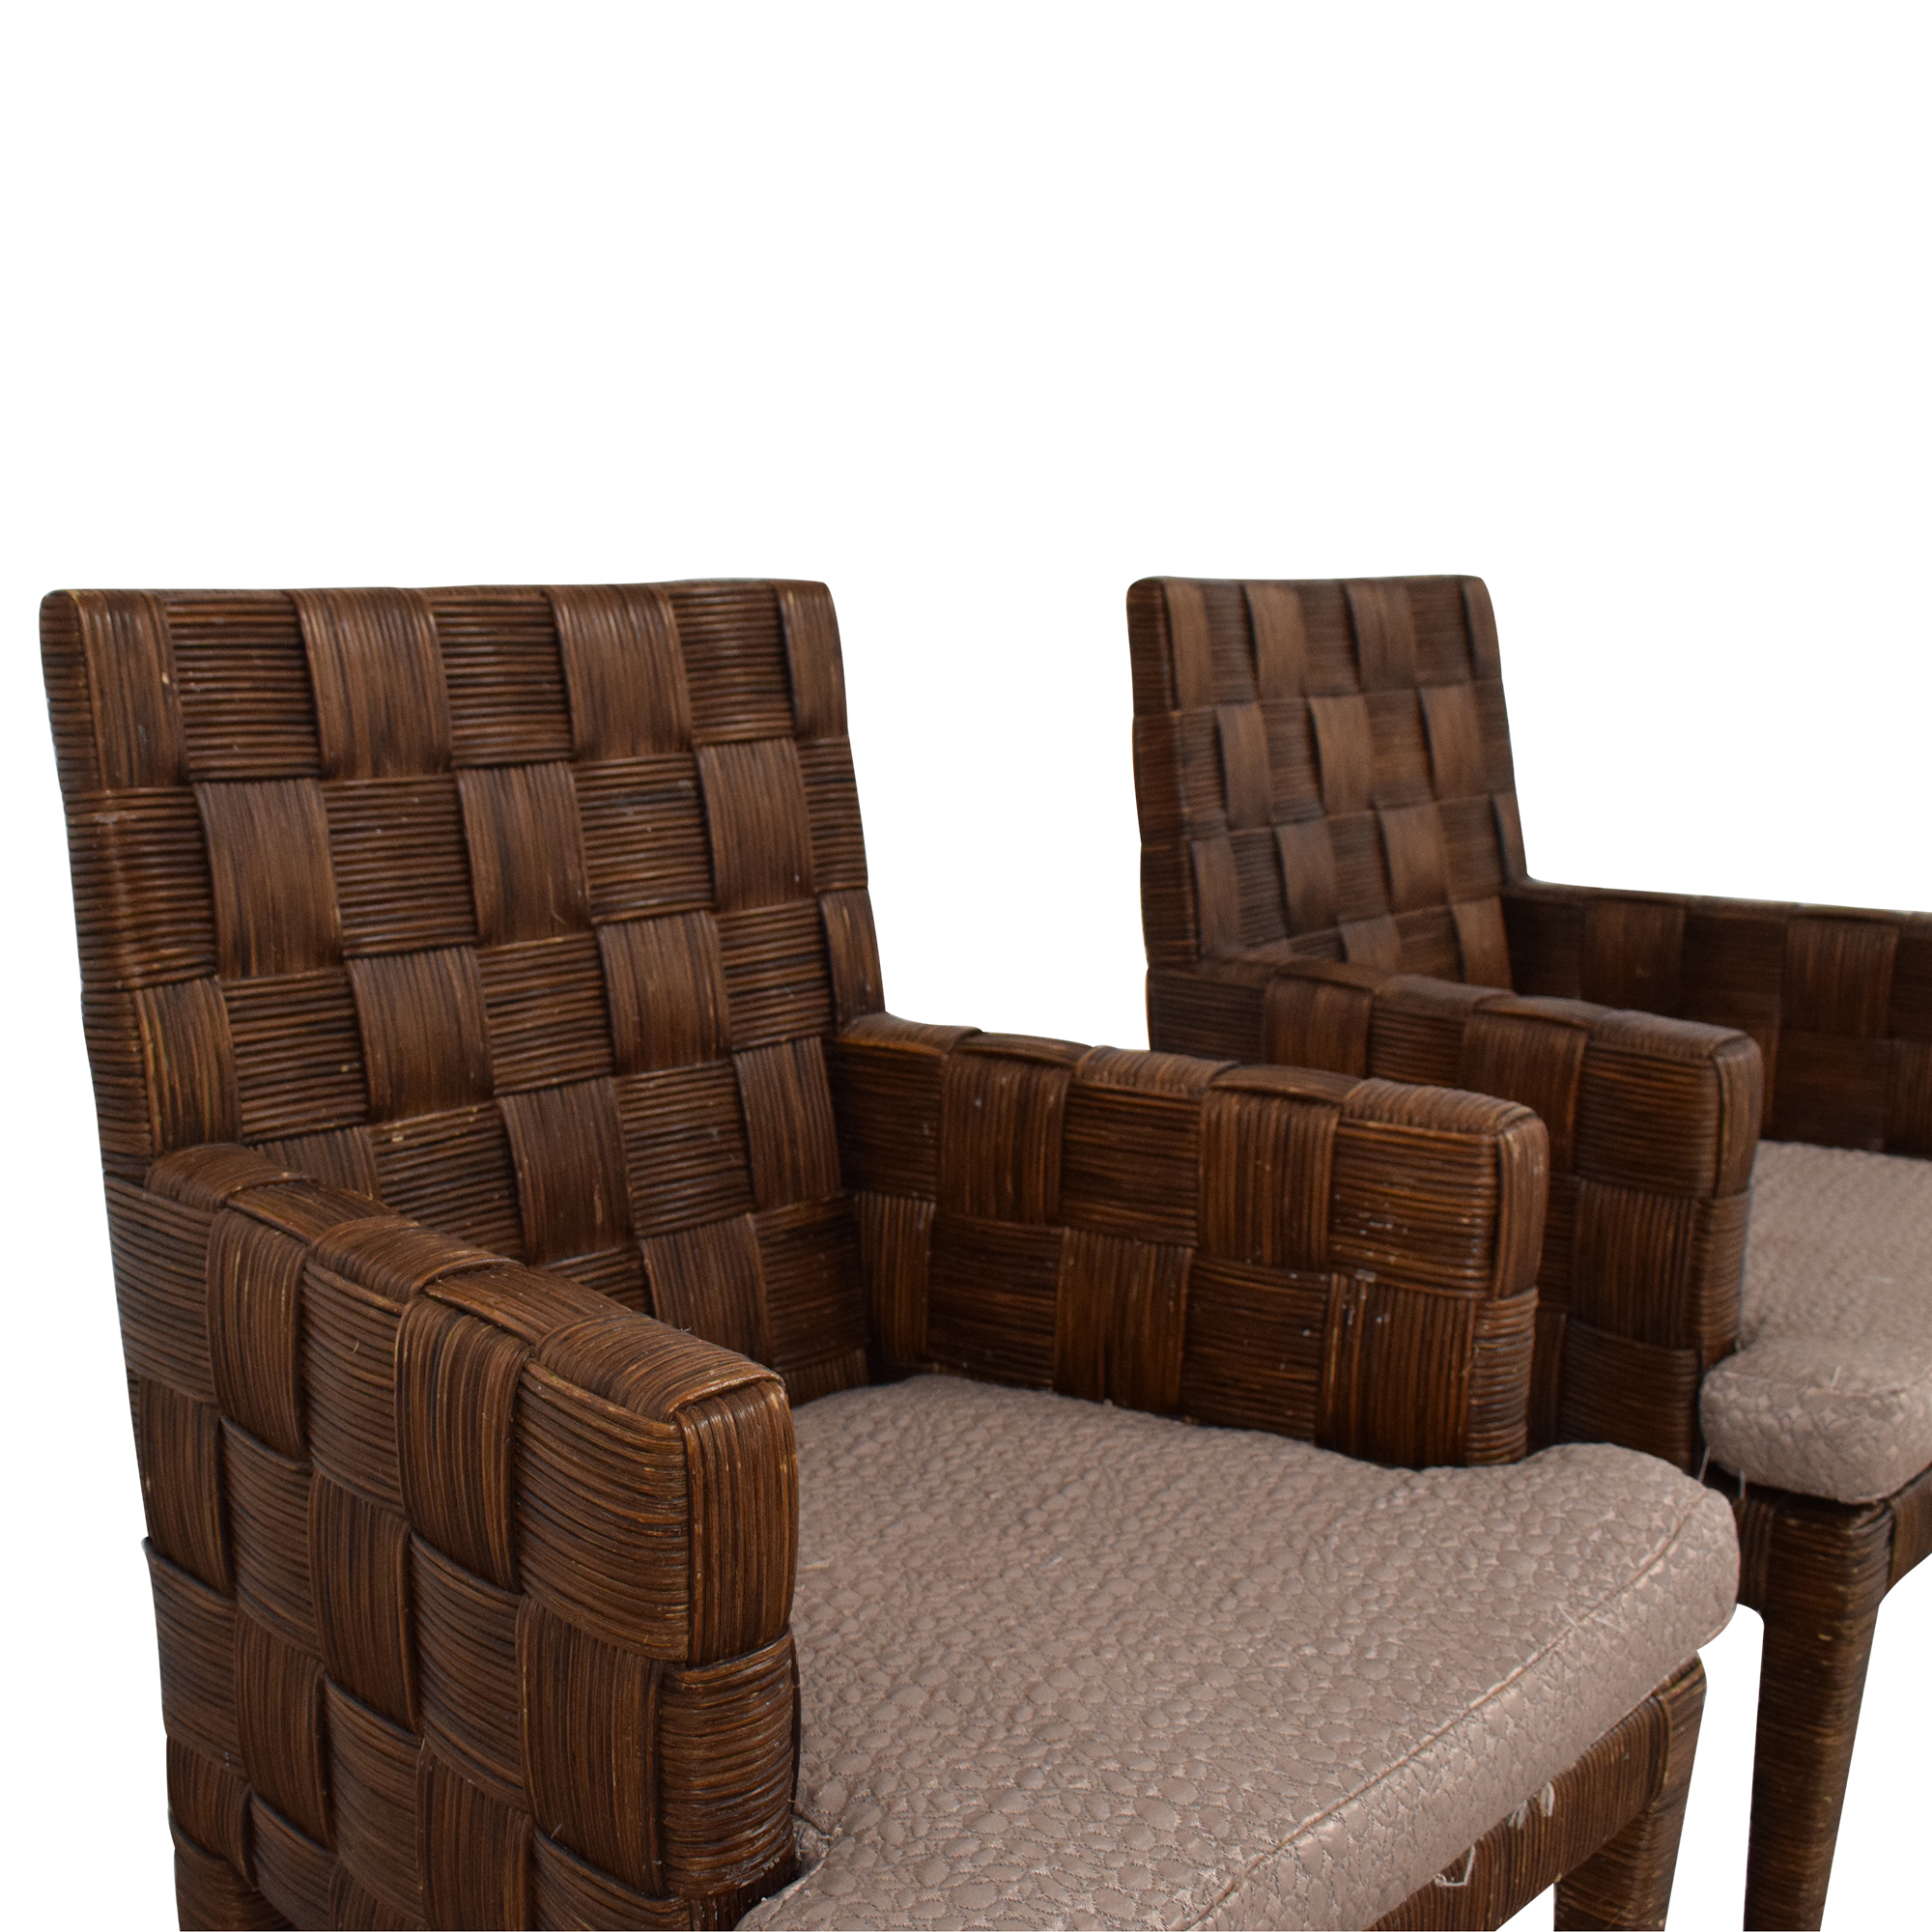 Donghia Donghia by John Hutton Block Island Dining Armchairs nj